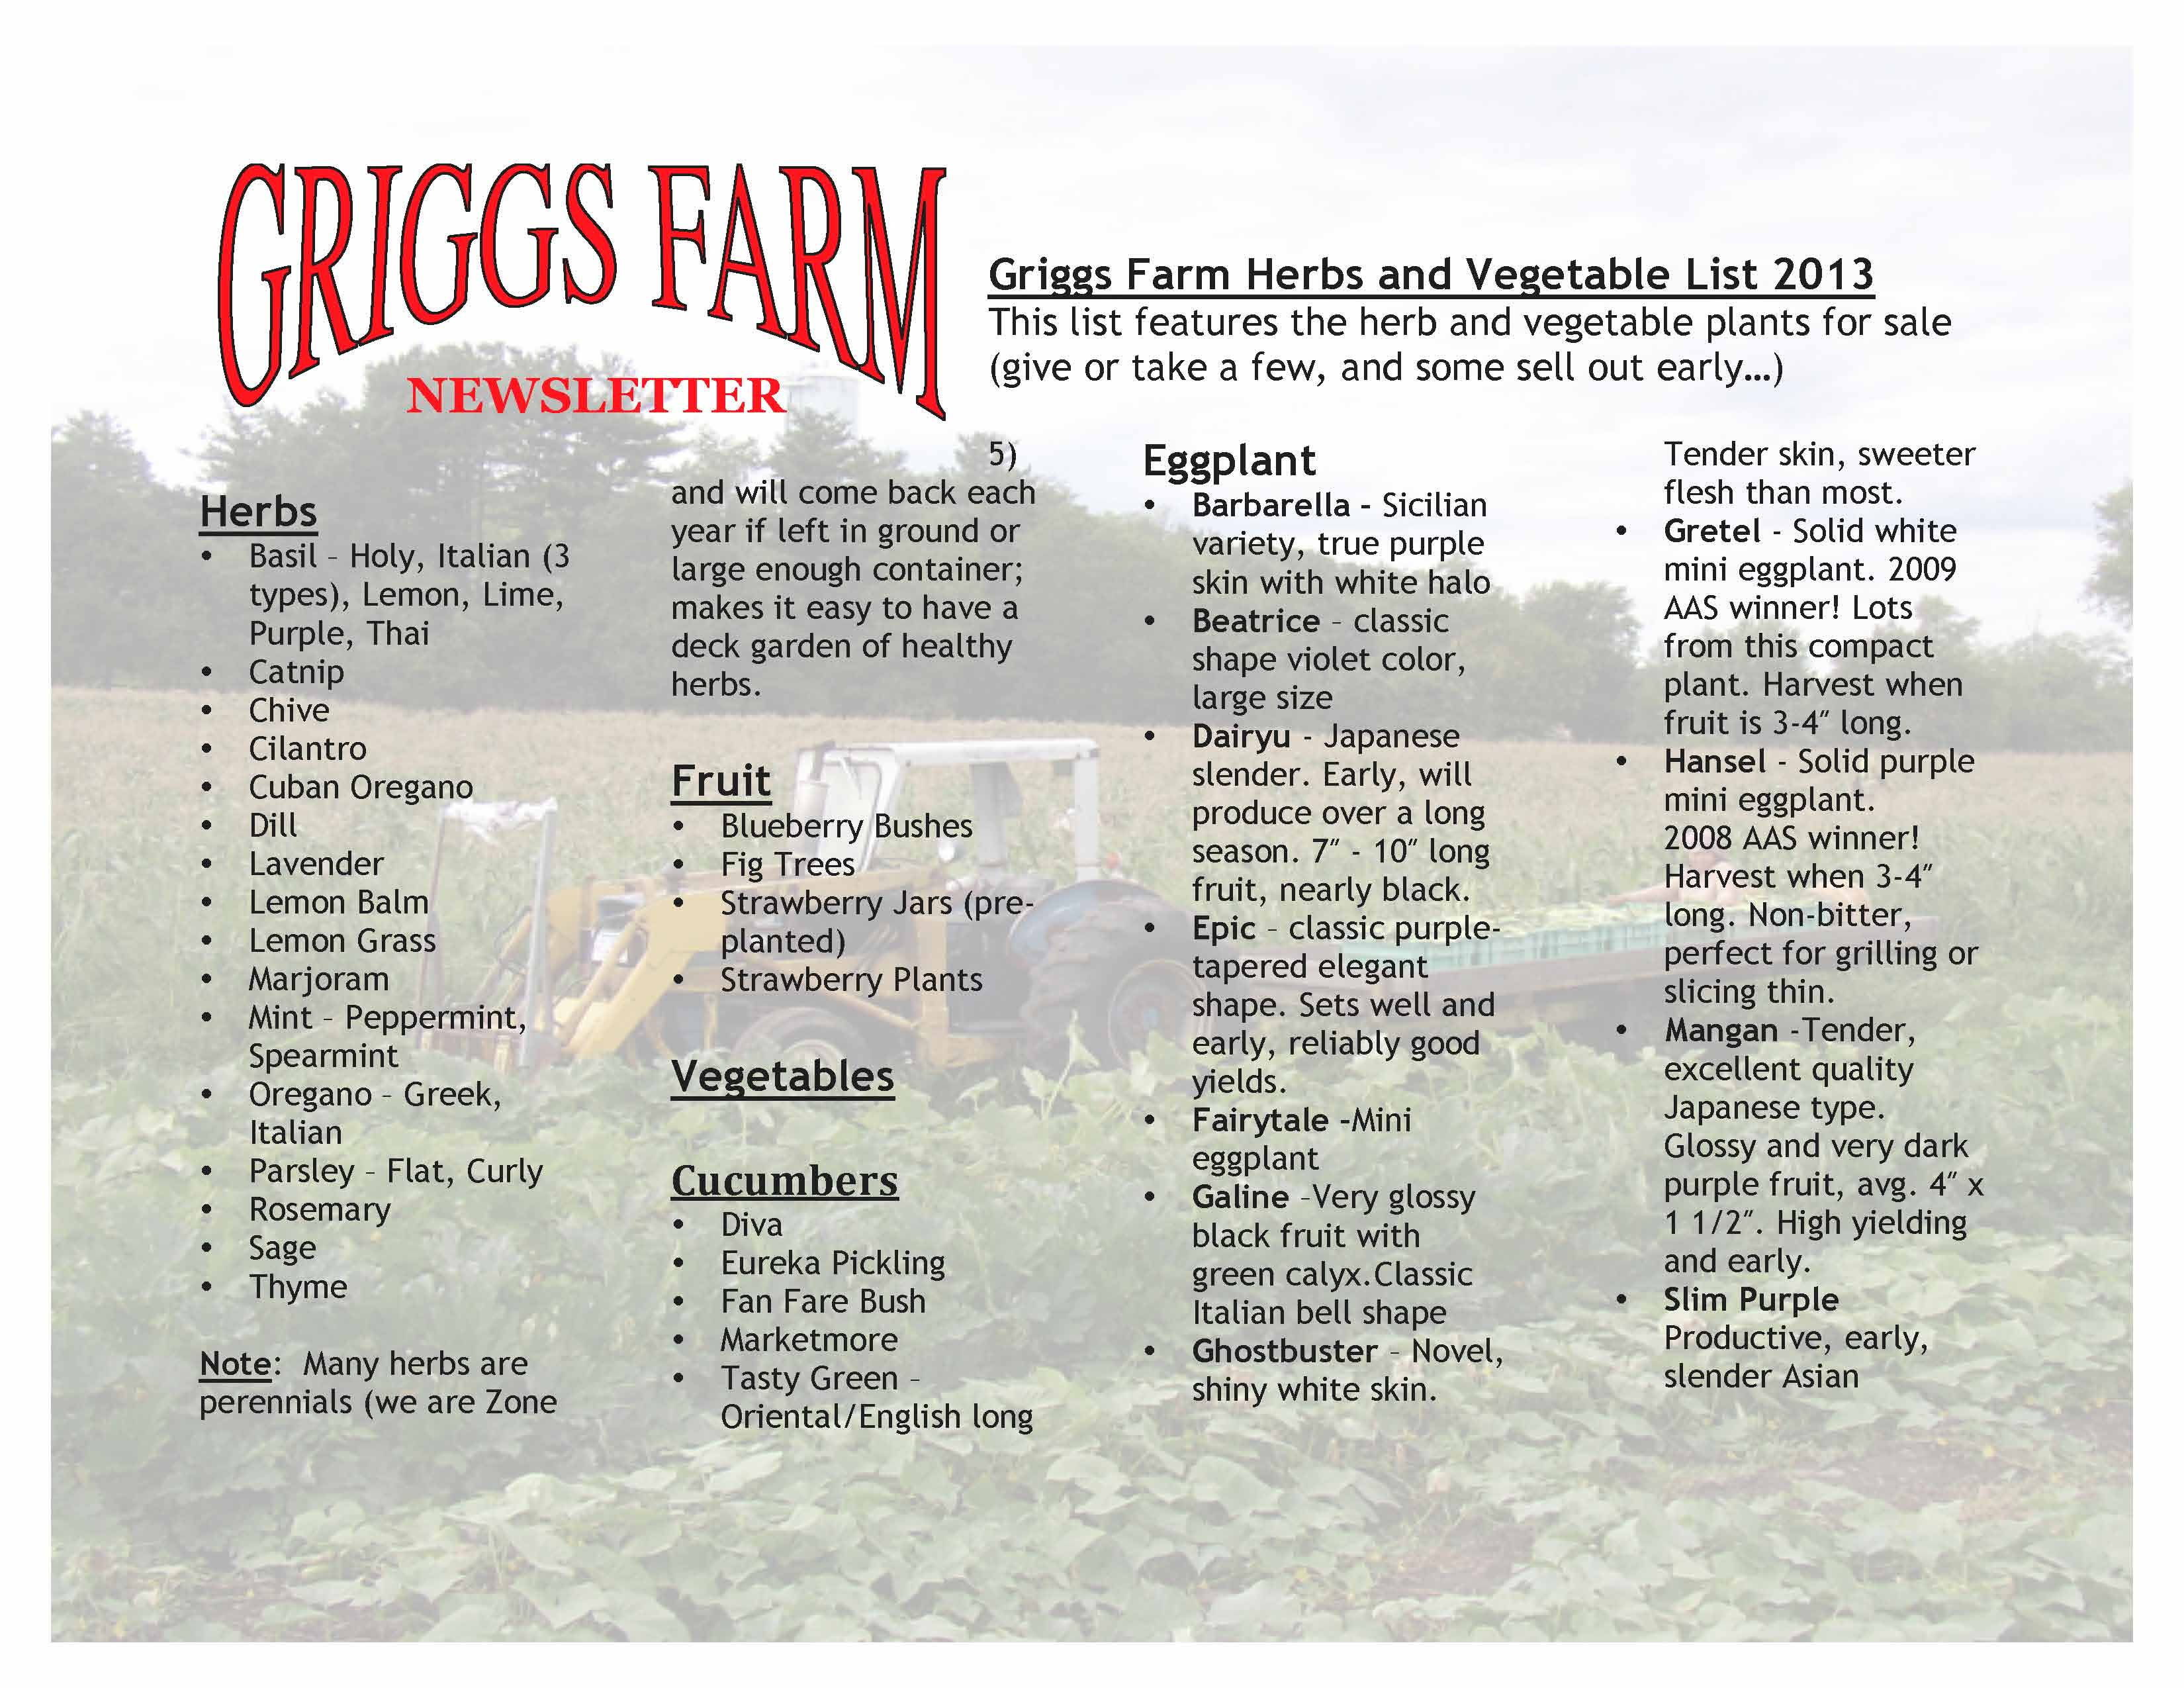 Griggs Farm Herbs and Vegetable List 2013